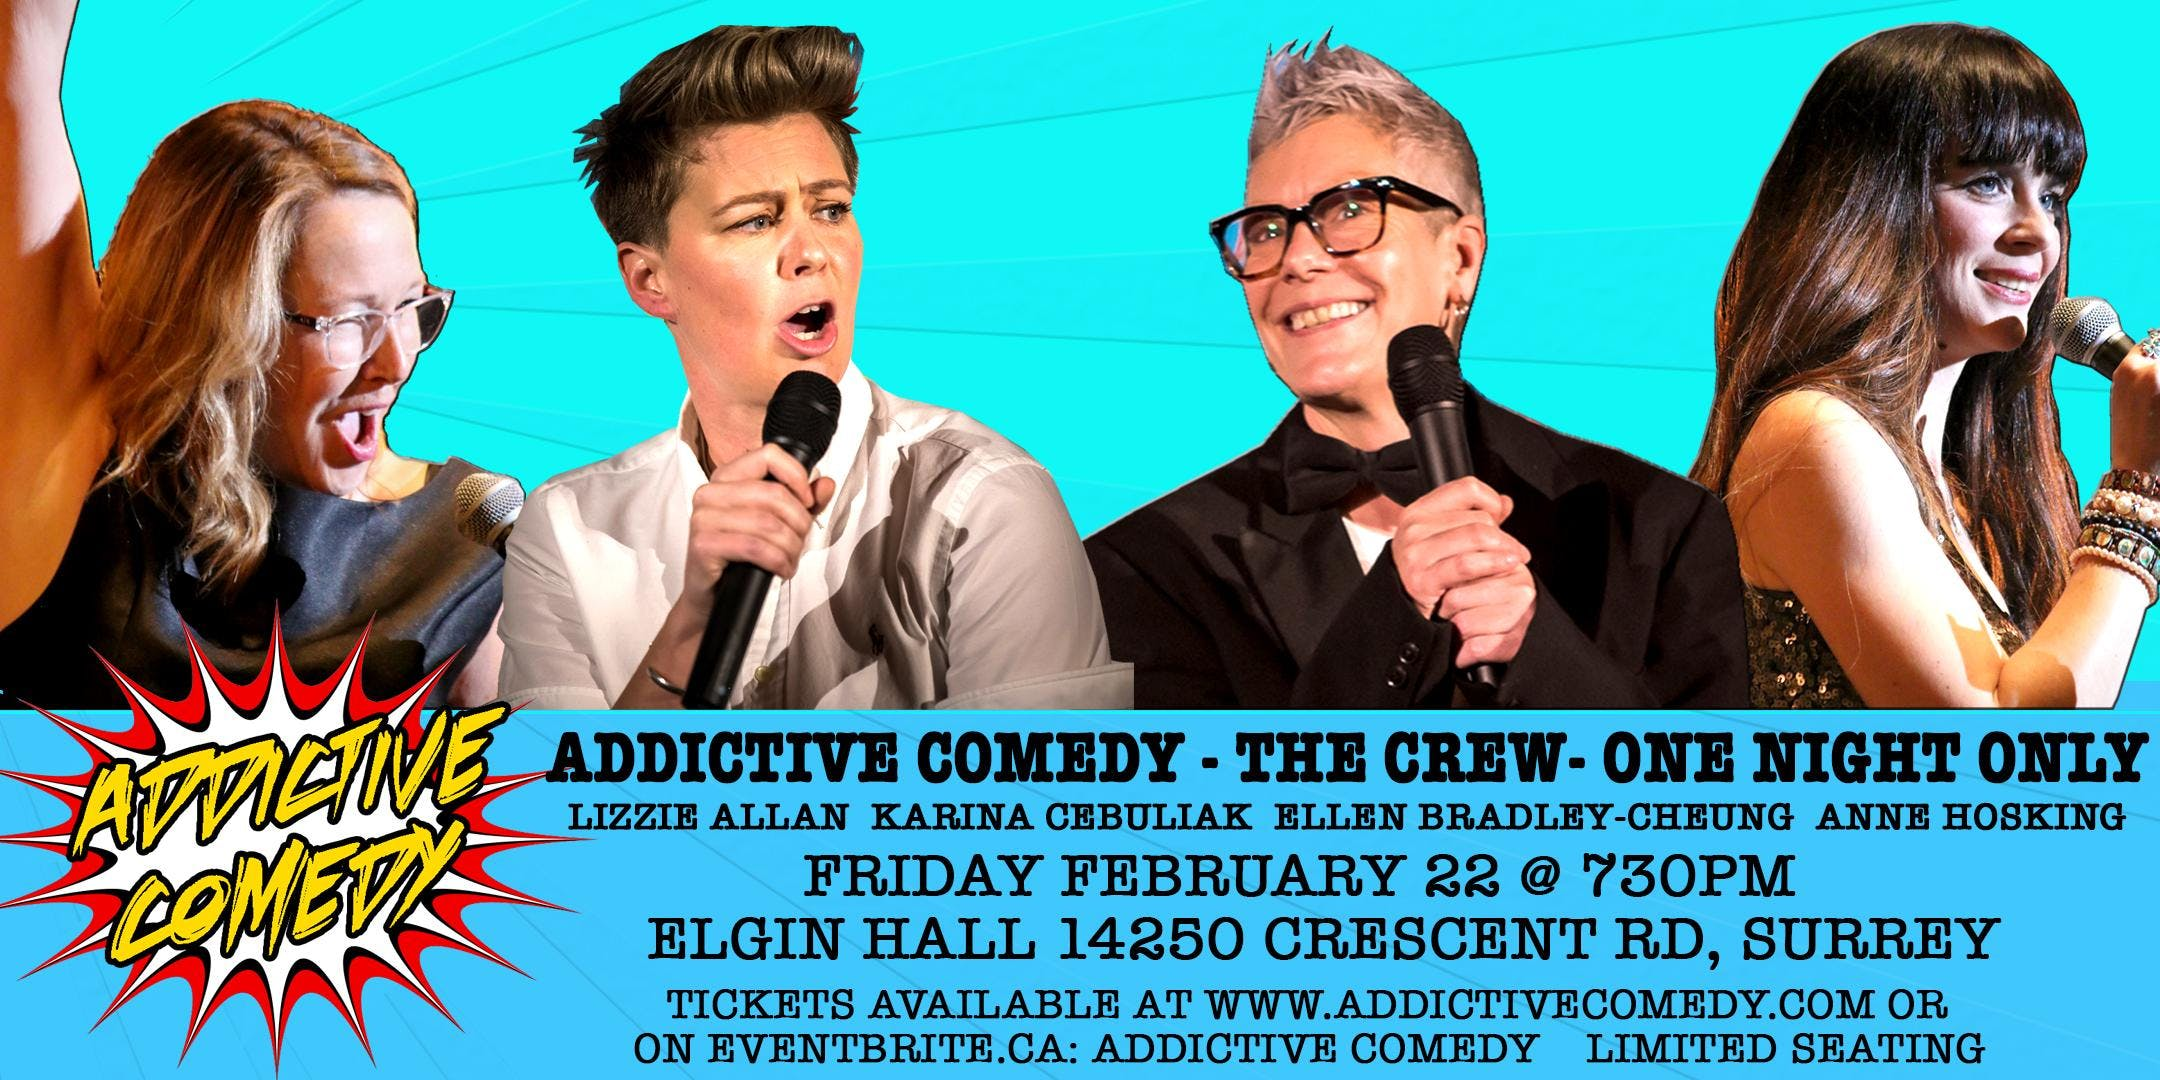 ADDICTIVE COMEDY -THE CREW- ONE NIGHT ONLY